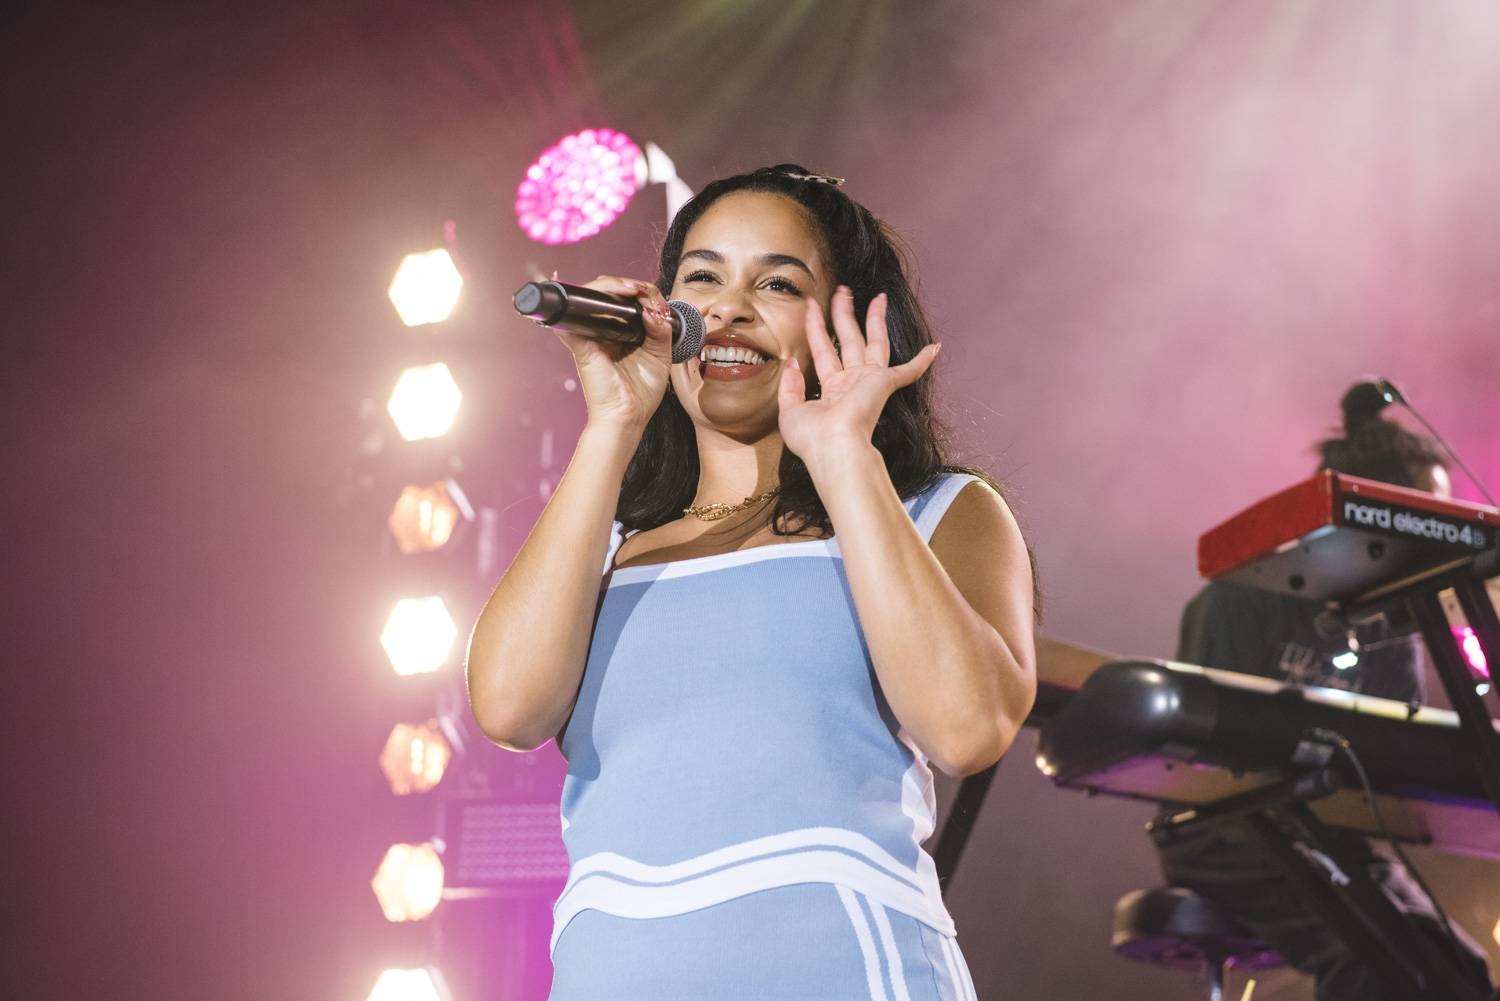 Jorja Smith at the PNE Forum, Vancouver, May 22 2019. Pavel Boiko photo.